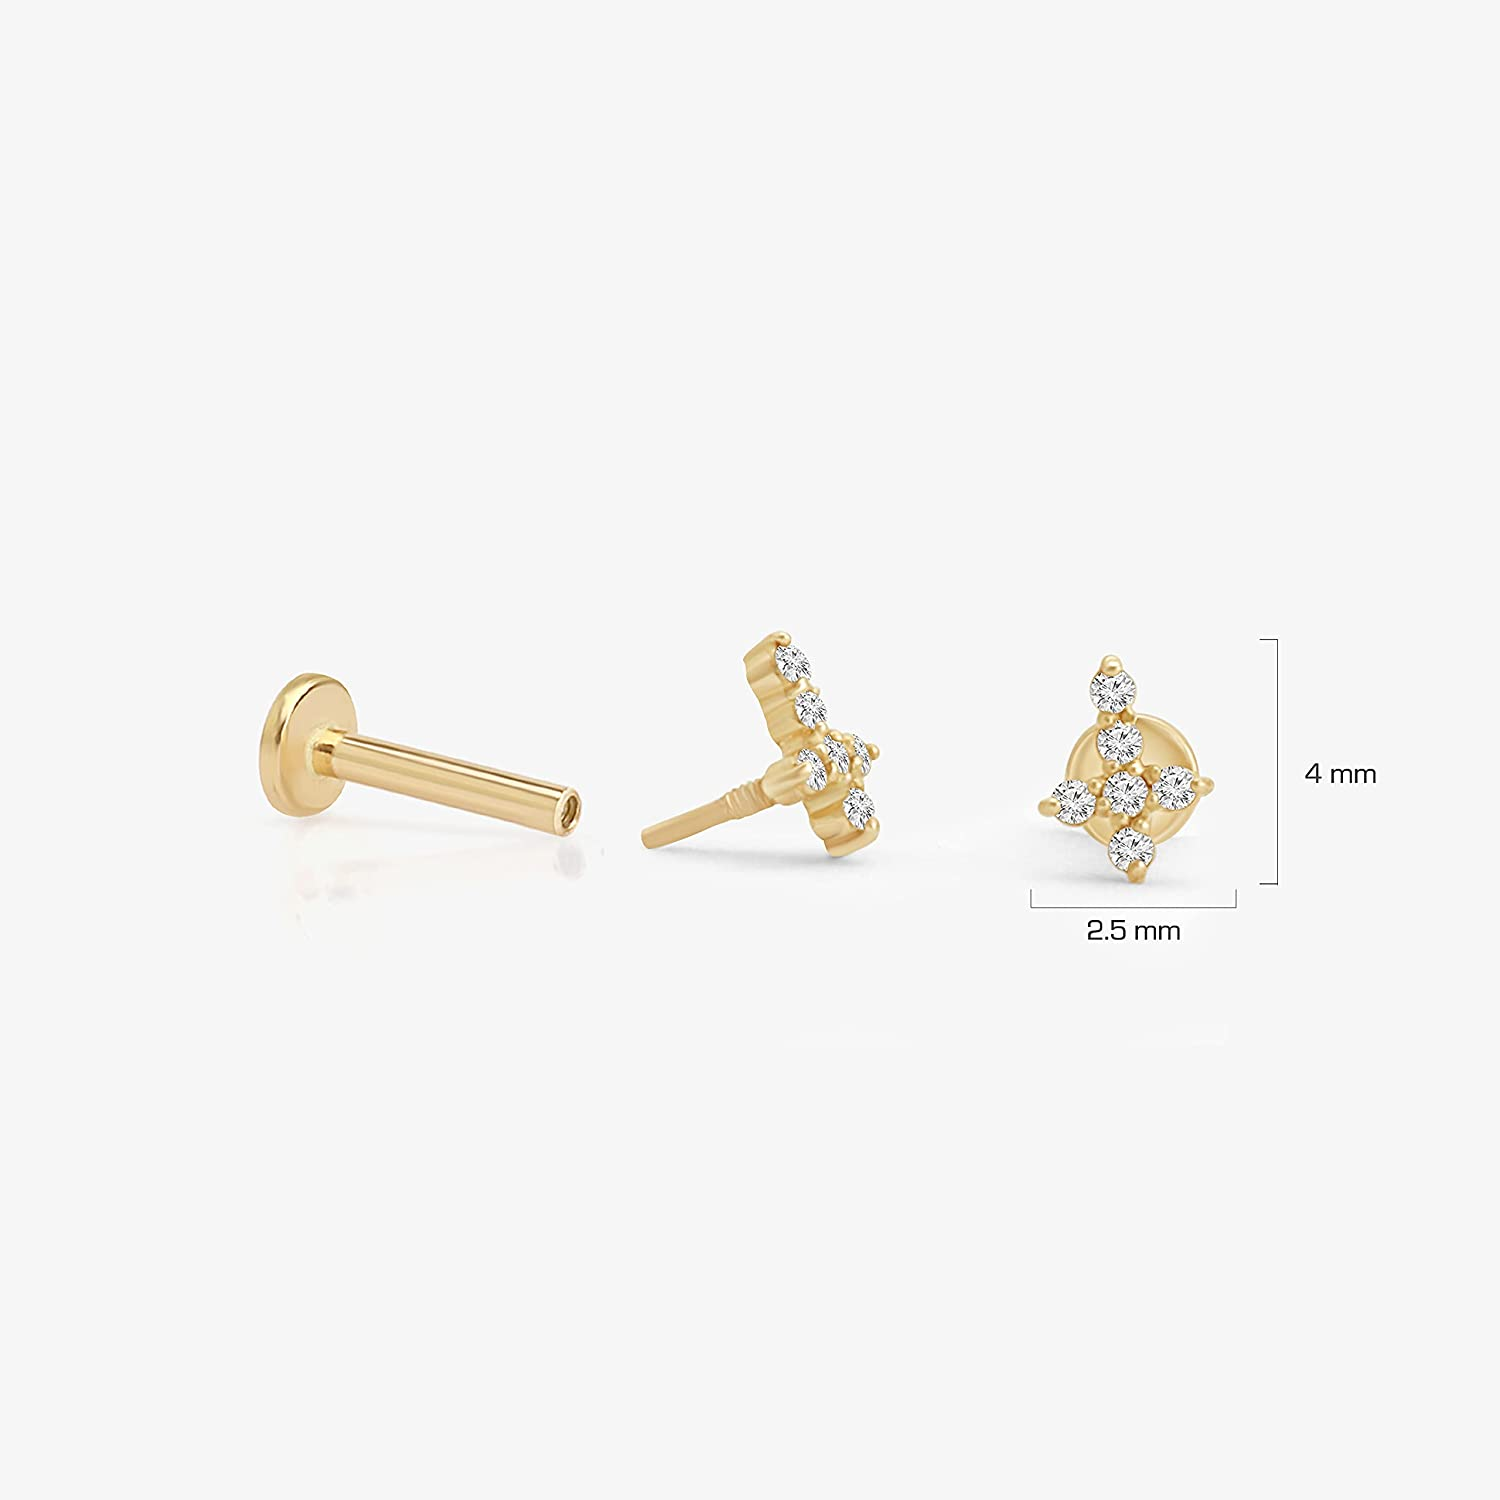 Estella Collection Natural Diamond Cross Cartilage Stud Earrings 14K Solid Rose Gold   Conch Helix Tragus Piercings Earring Threaded(0.04 Carat T.W, G-H Color, SI1-SI2 Clarity) Jewelry For Men Women